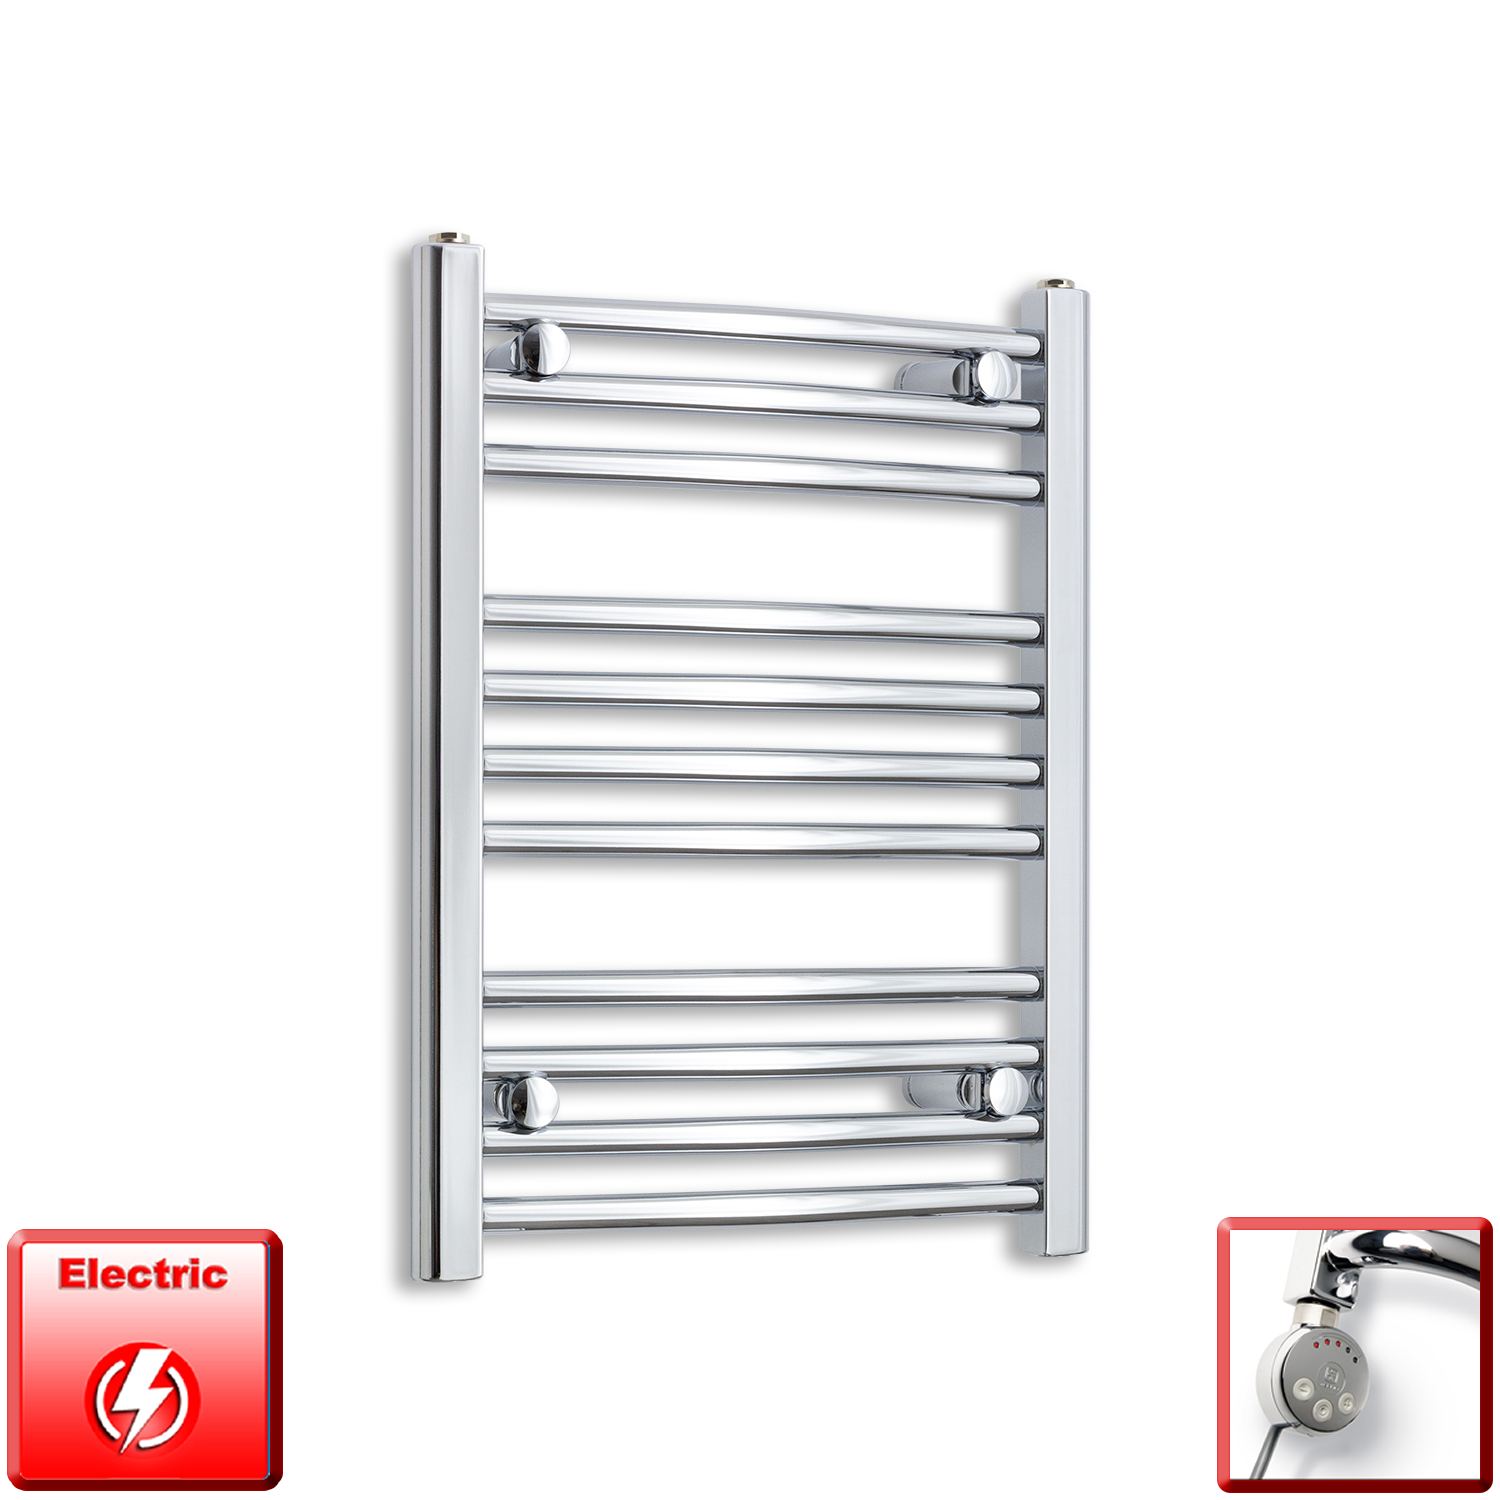 400mm Wide 600mm High Pre-Filled Chrome Electric Towel Rail Radiator With Thermostatic MEG Element